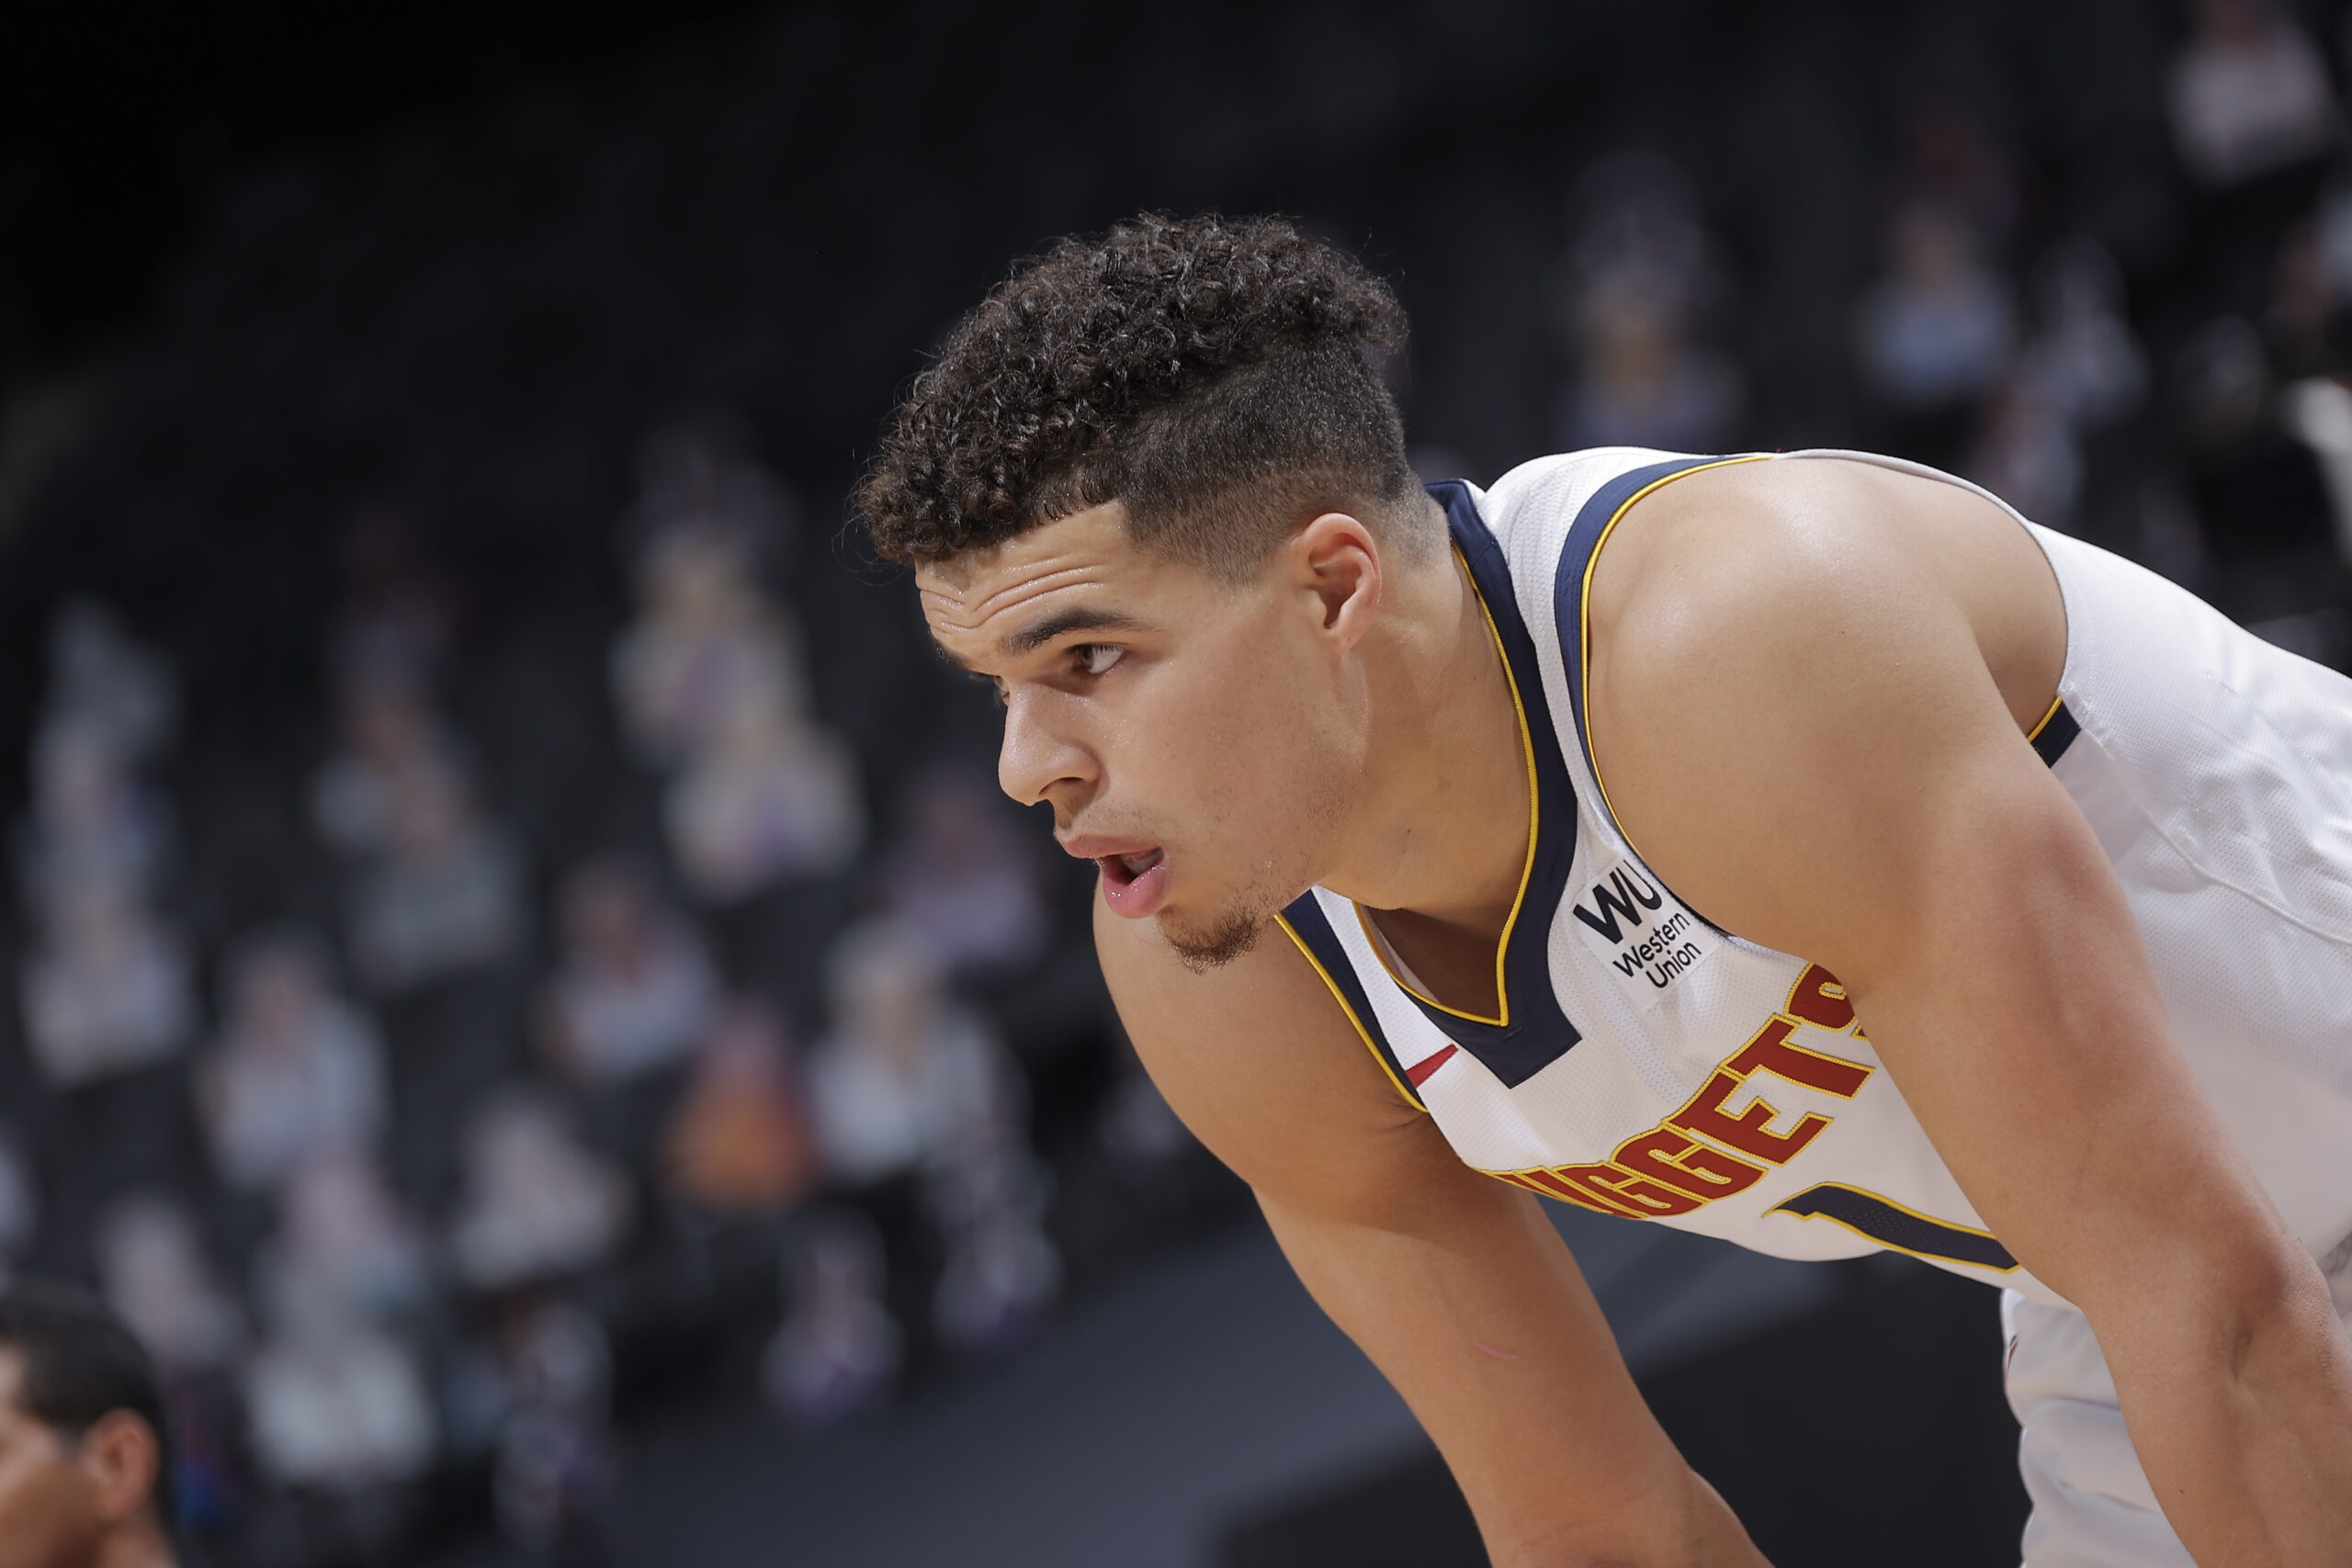 Report: Nuggets' Michael Porter Jr. to return tonight vs. Suns